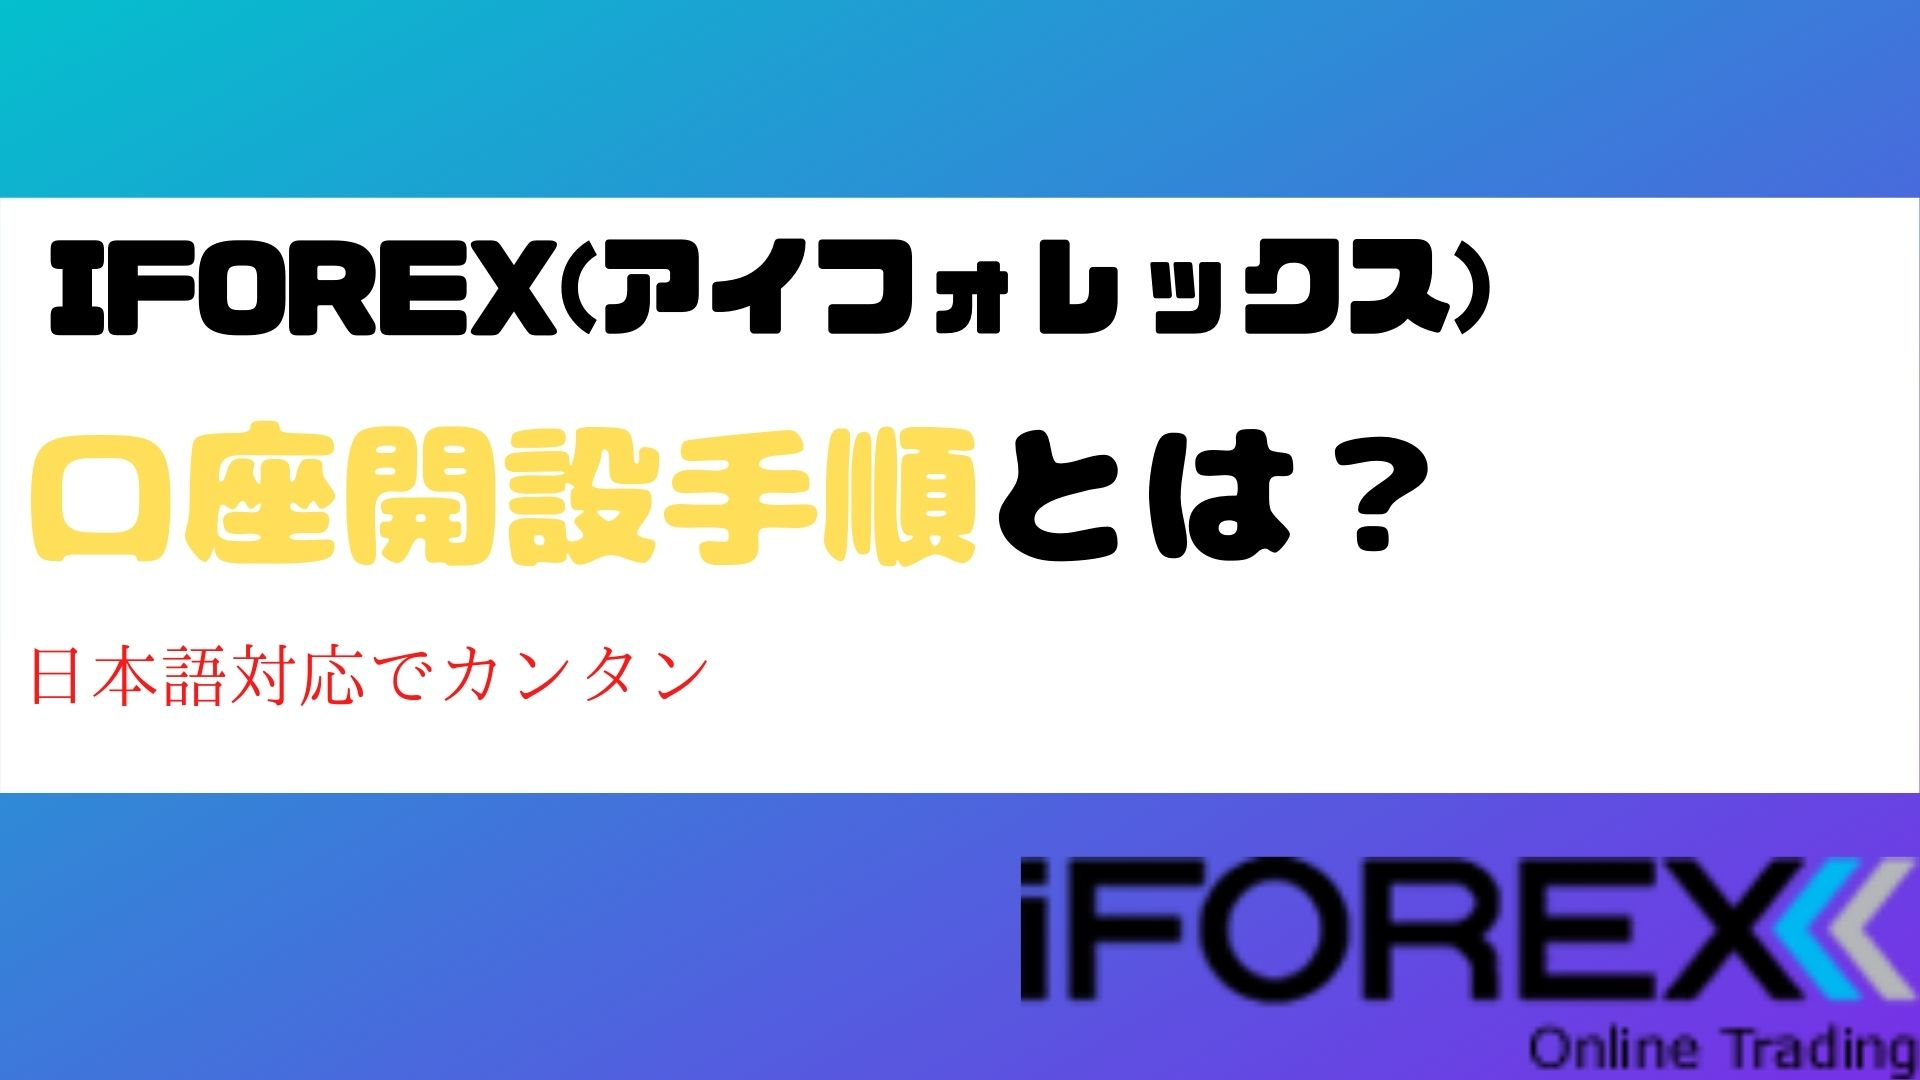 iforex-account-opening-title